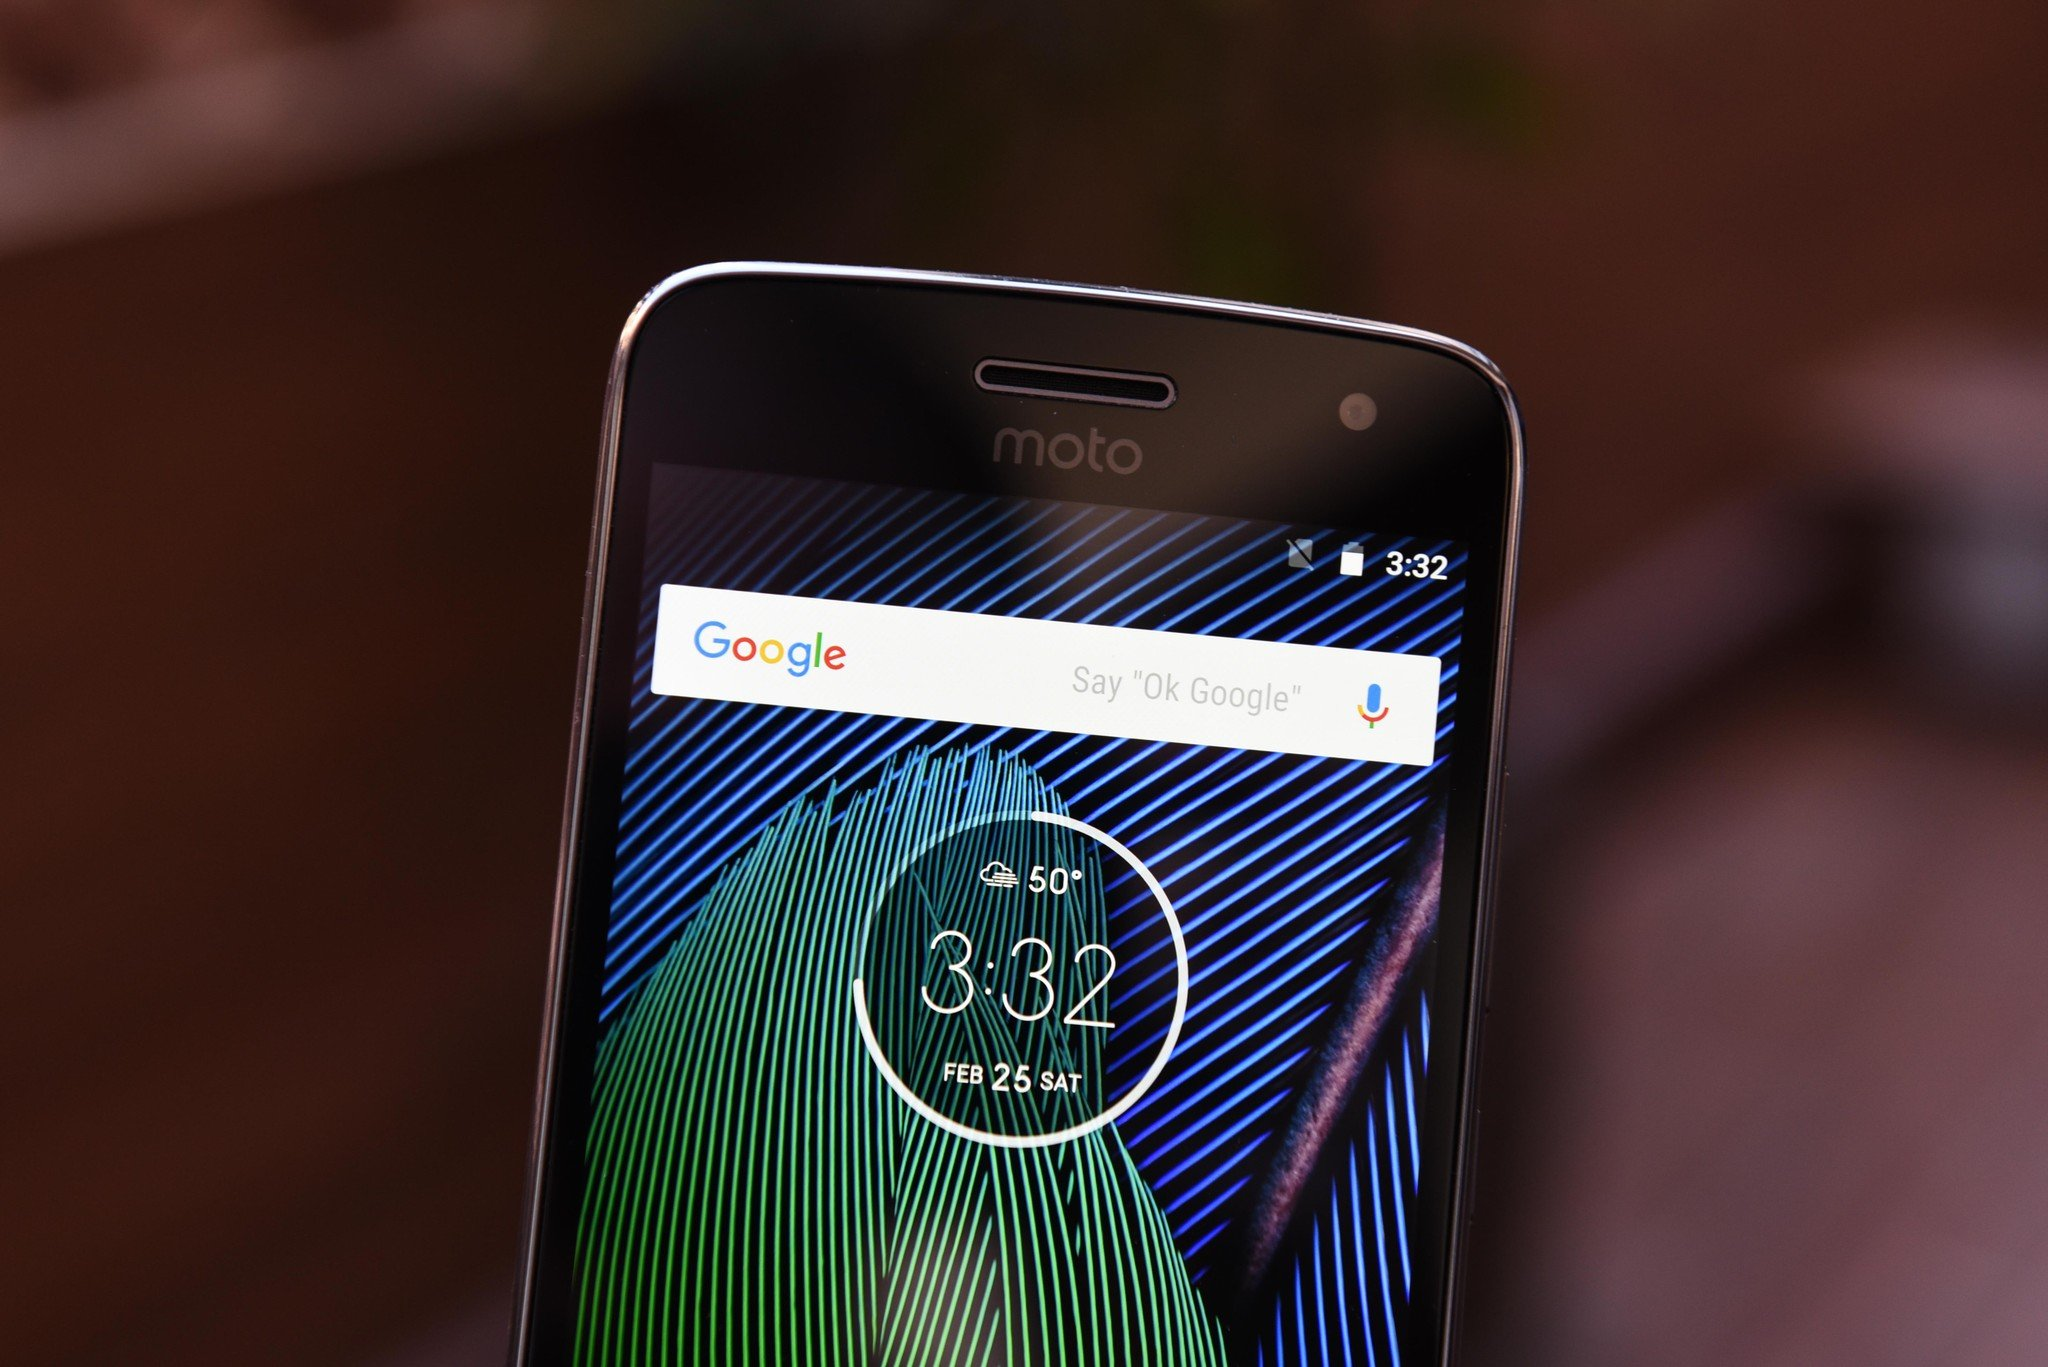 hight resolution of like last year both the moto g5 and g5 plus offer full hd displays but motorola has brought the size down to 5 0 inches and 5 2 inches respectively